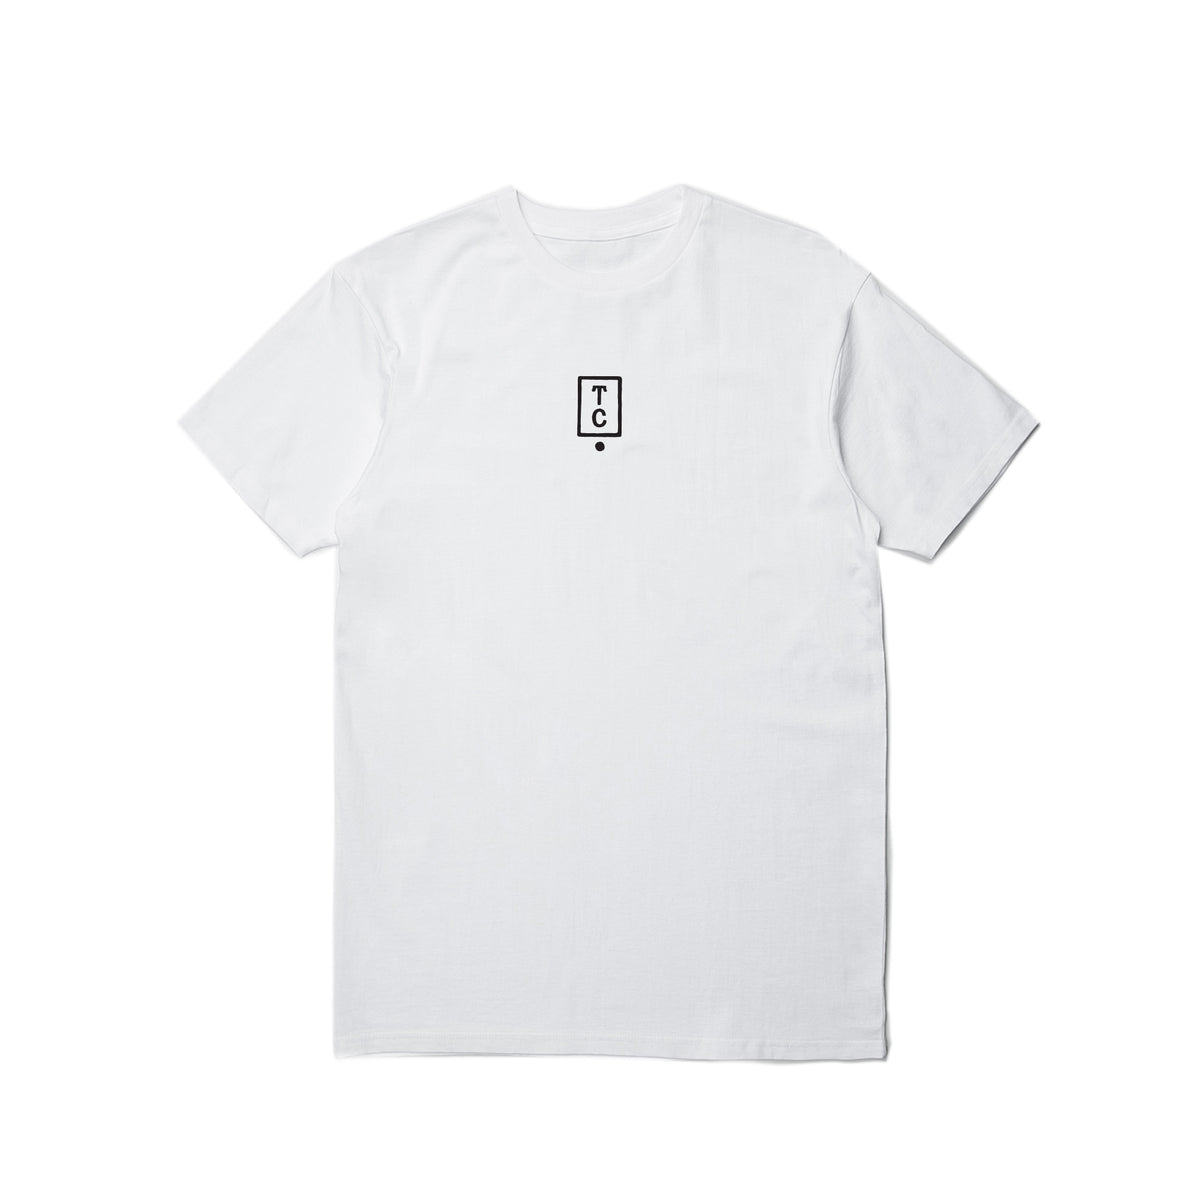 Histogram Tee - White